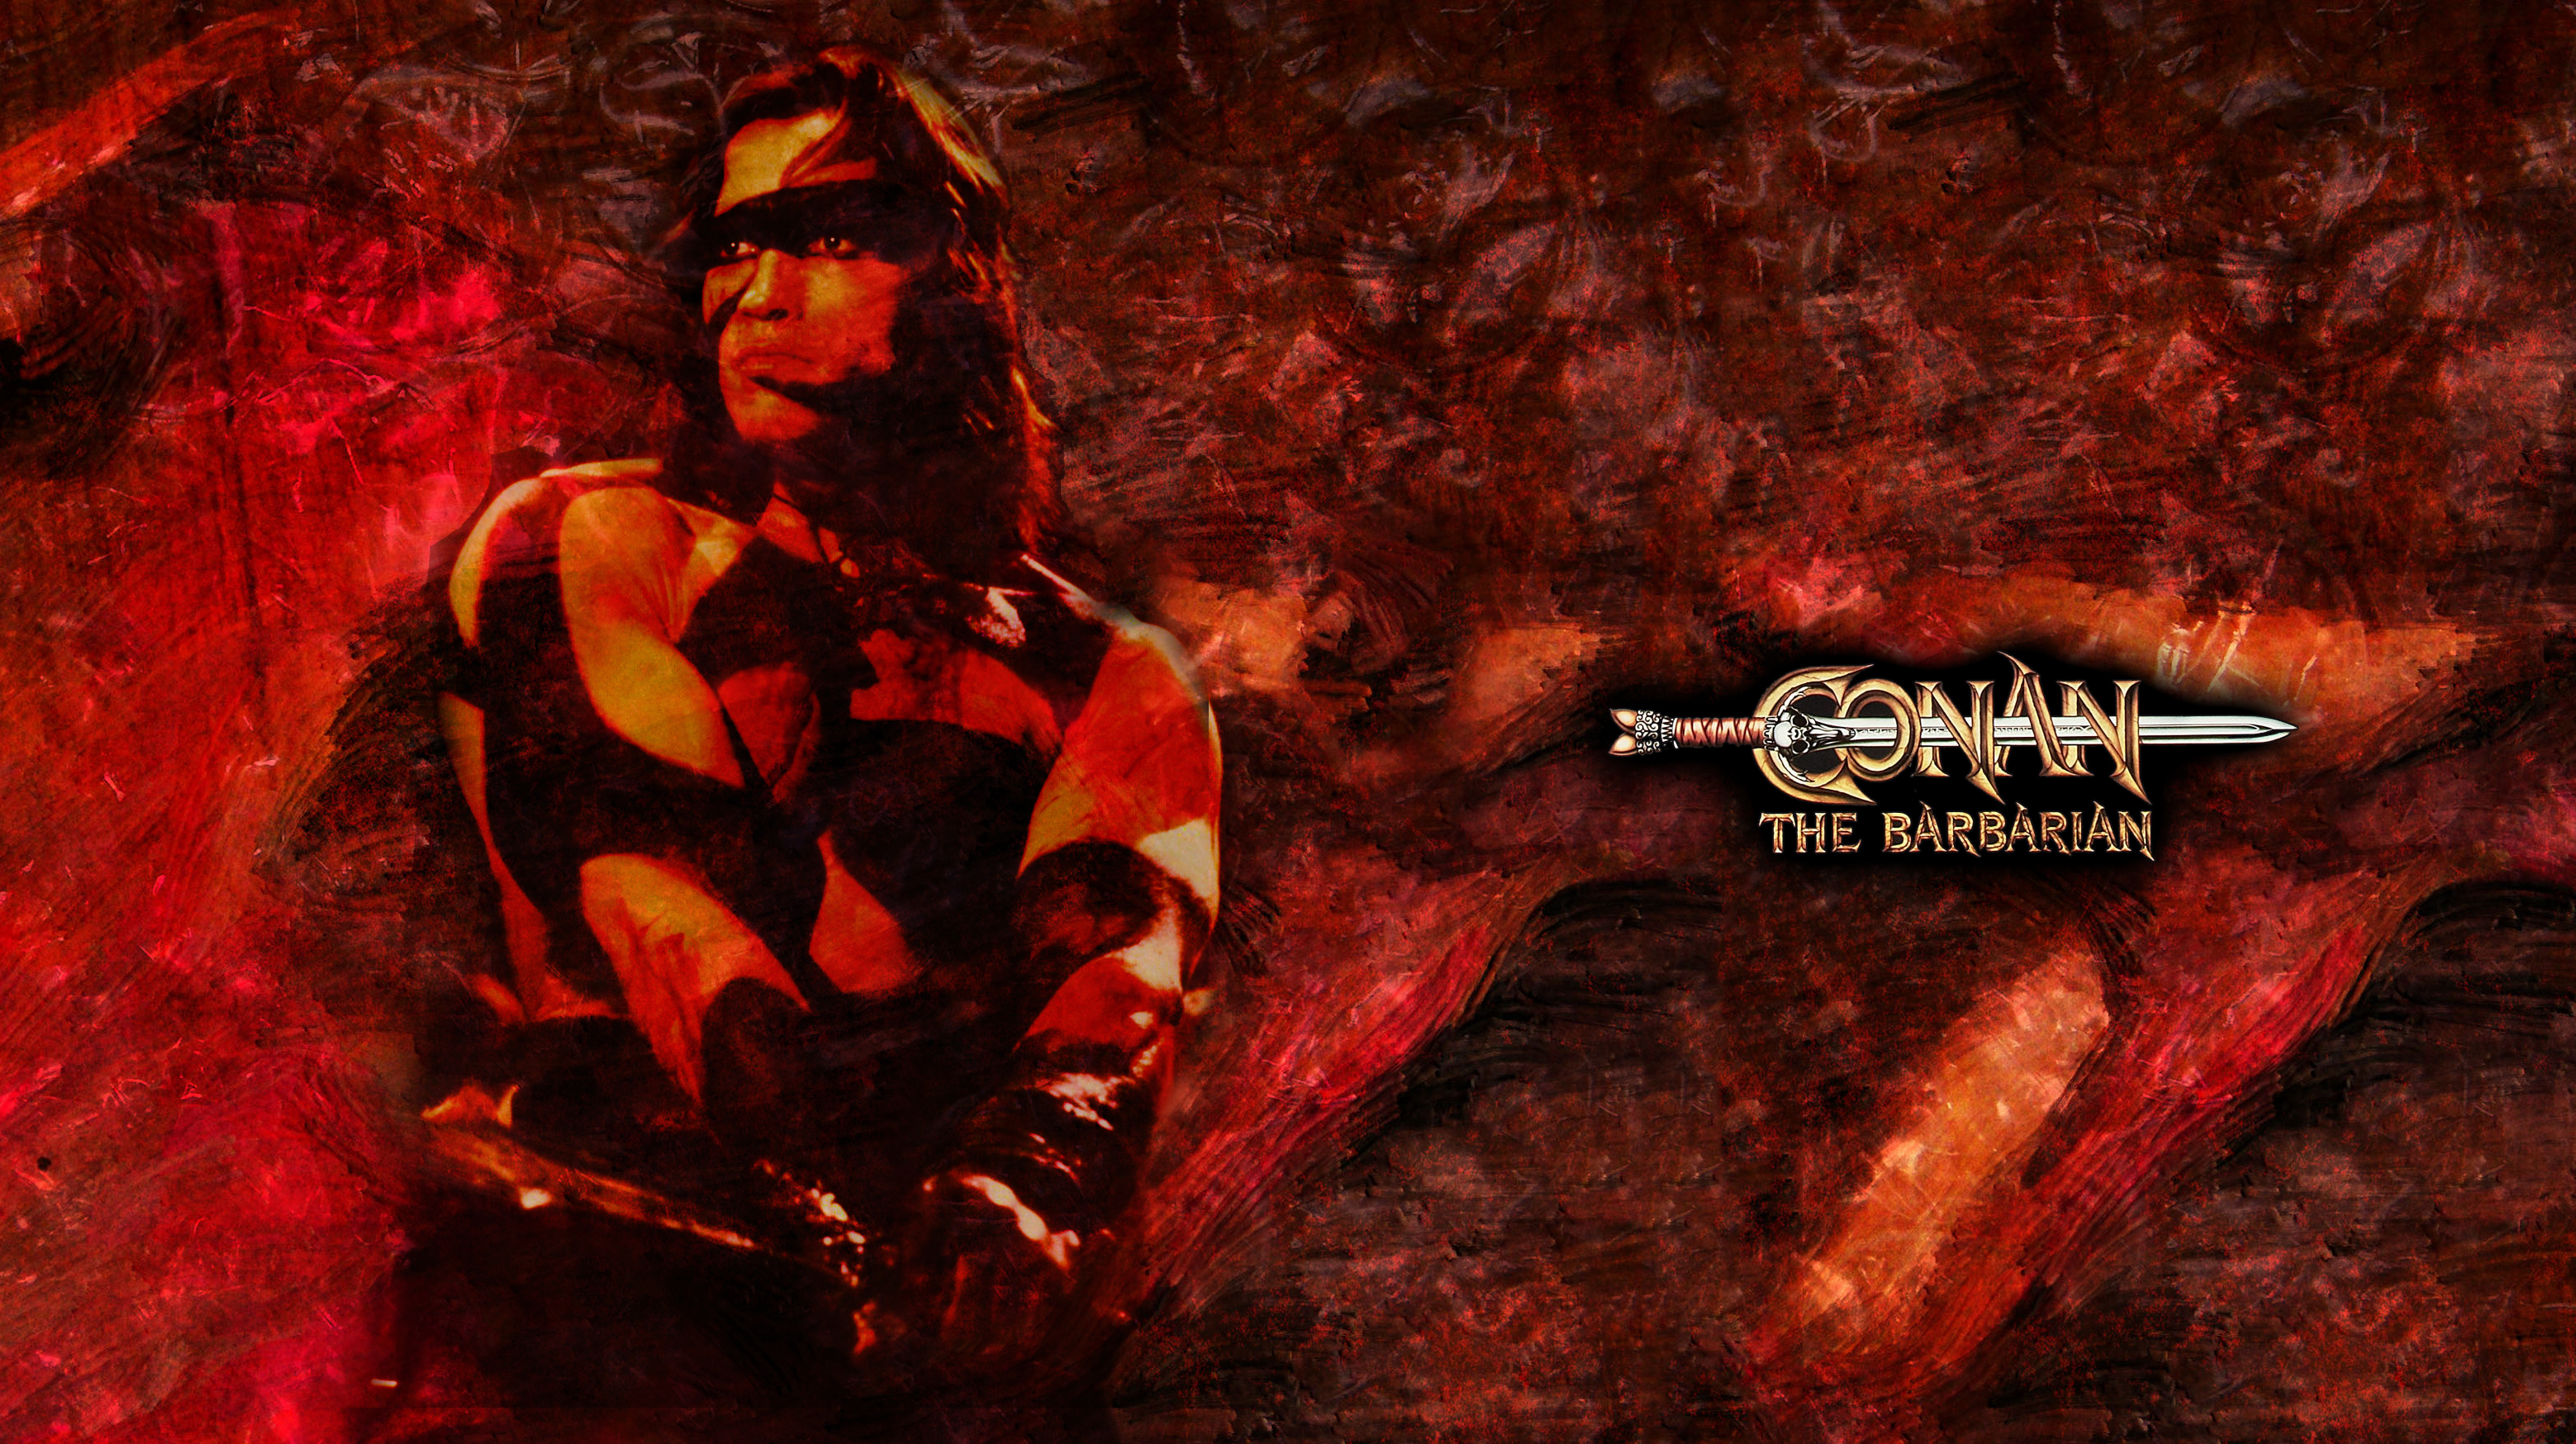 Conan the barbarian henti hardcore video